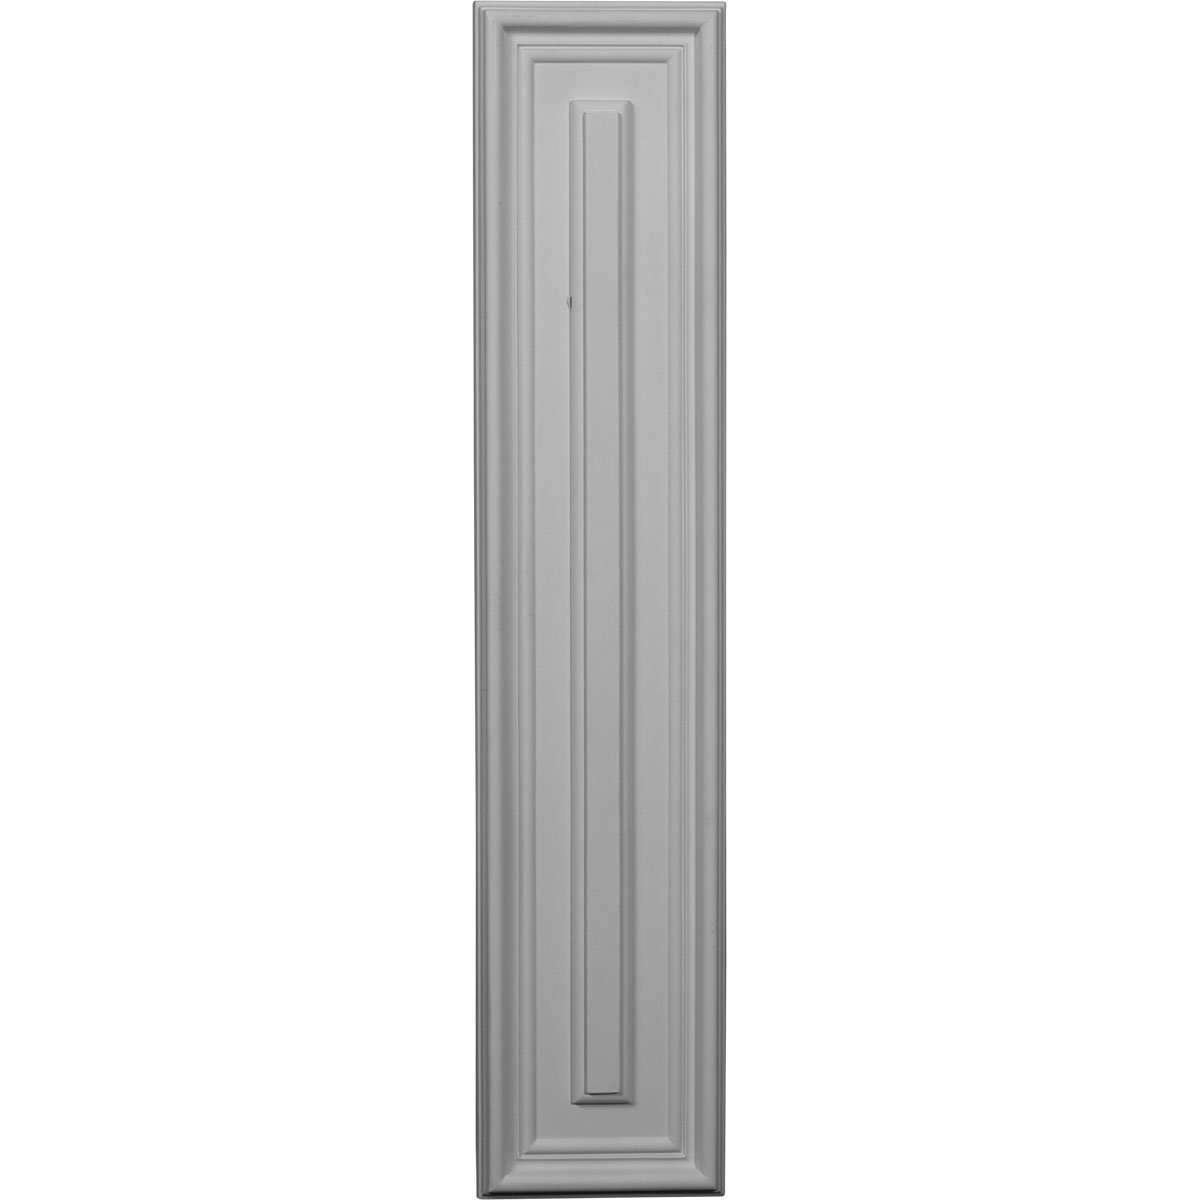 Ekena Millwork PNL22X05LE-CASE-12 22 5/8 inch W x 4 3/4 inch H x 5/8 inch P Legacy Rectangle Wall/Door Panel (12-Pack),